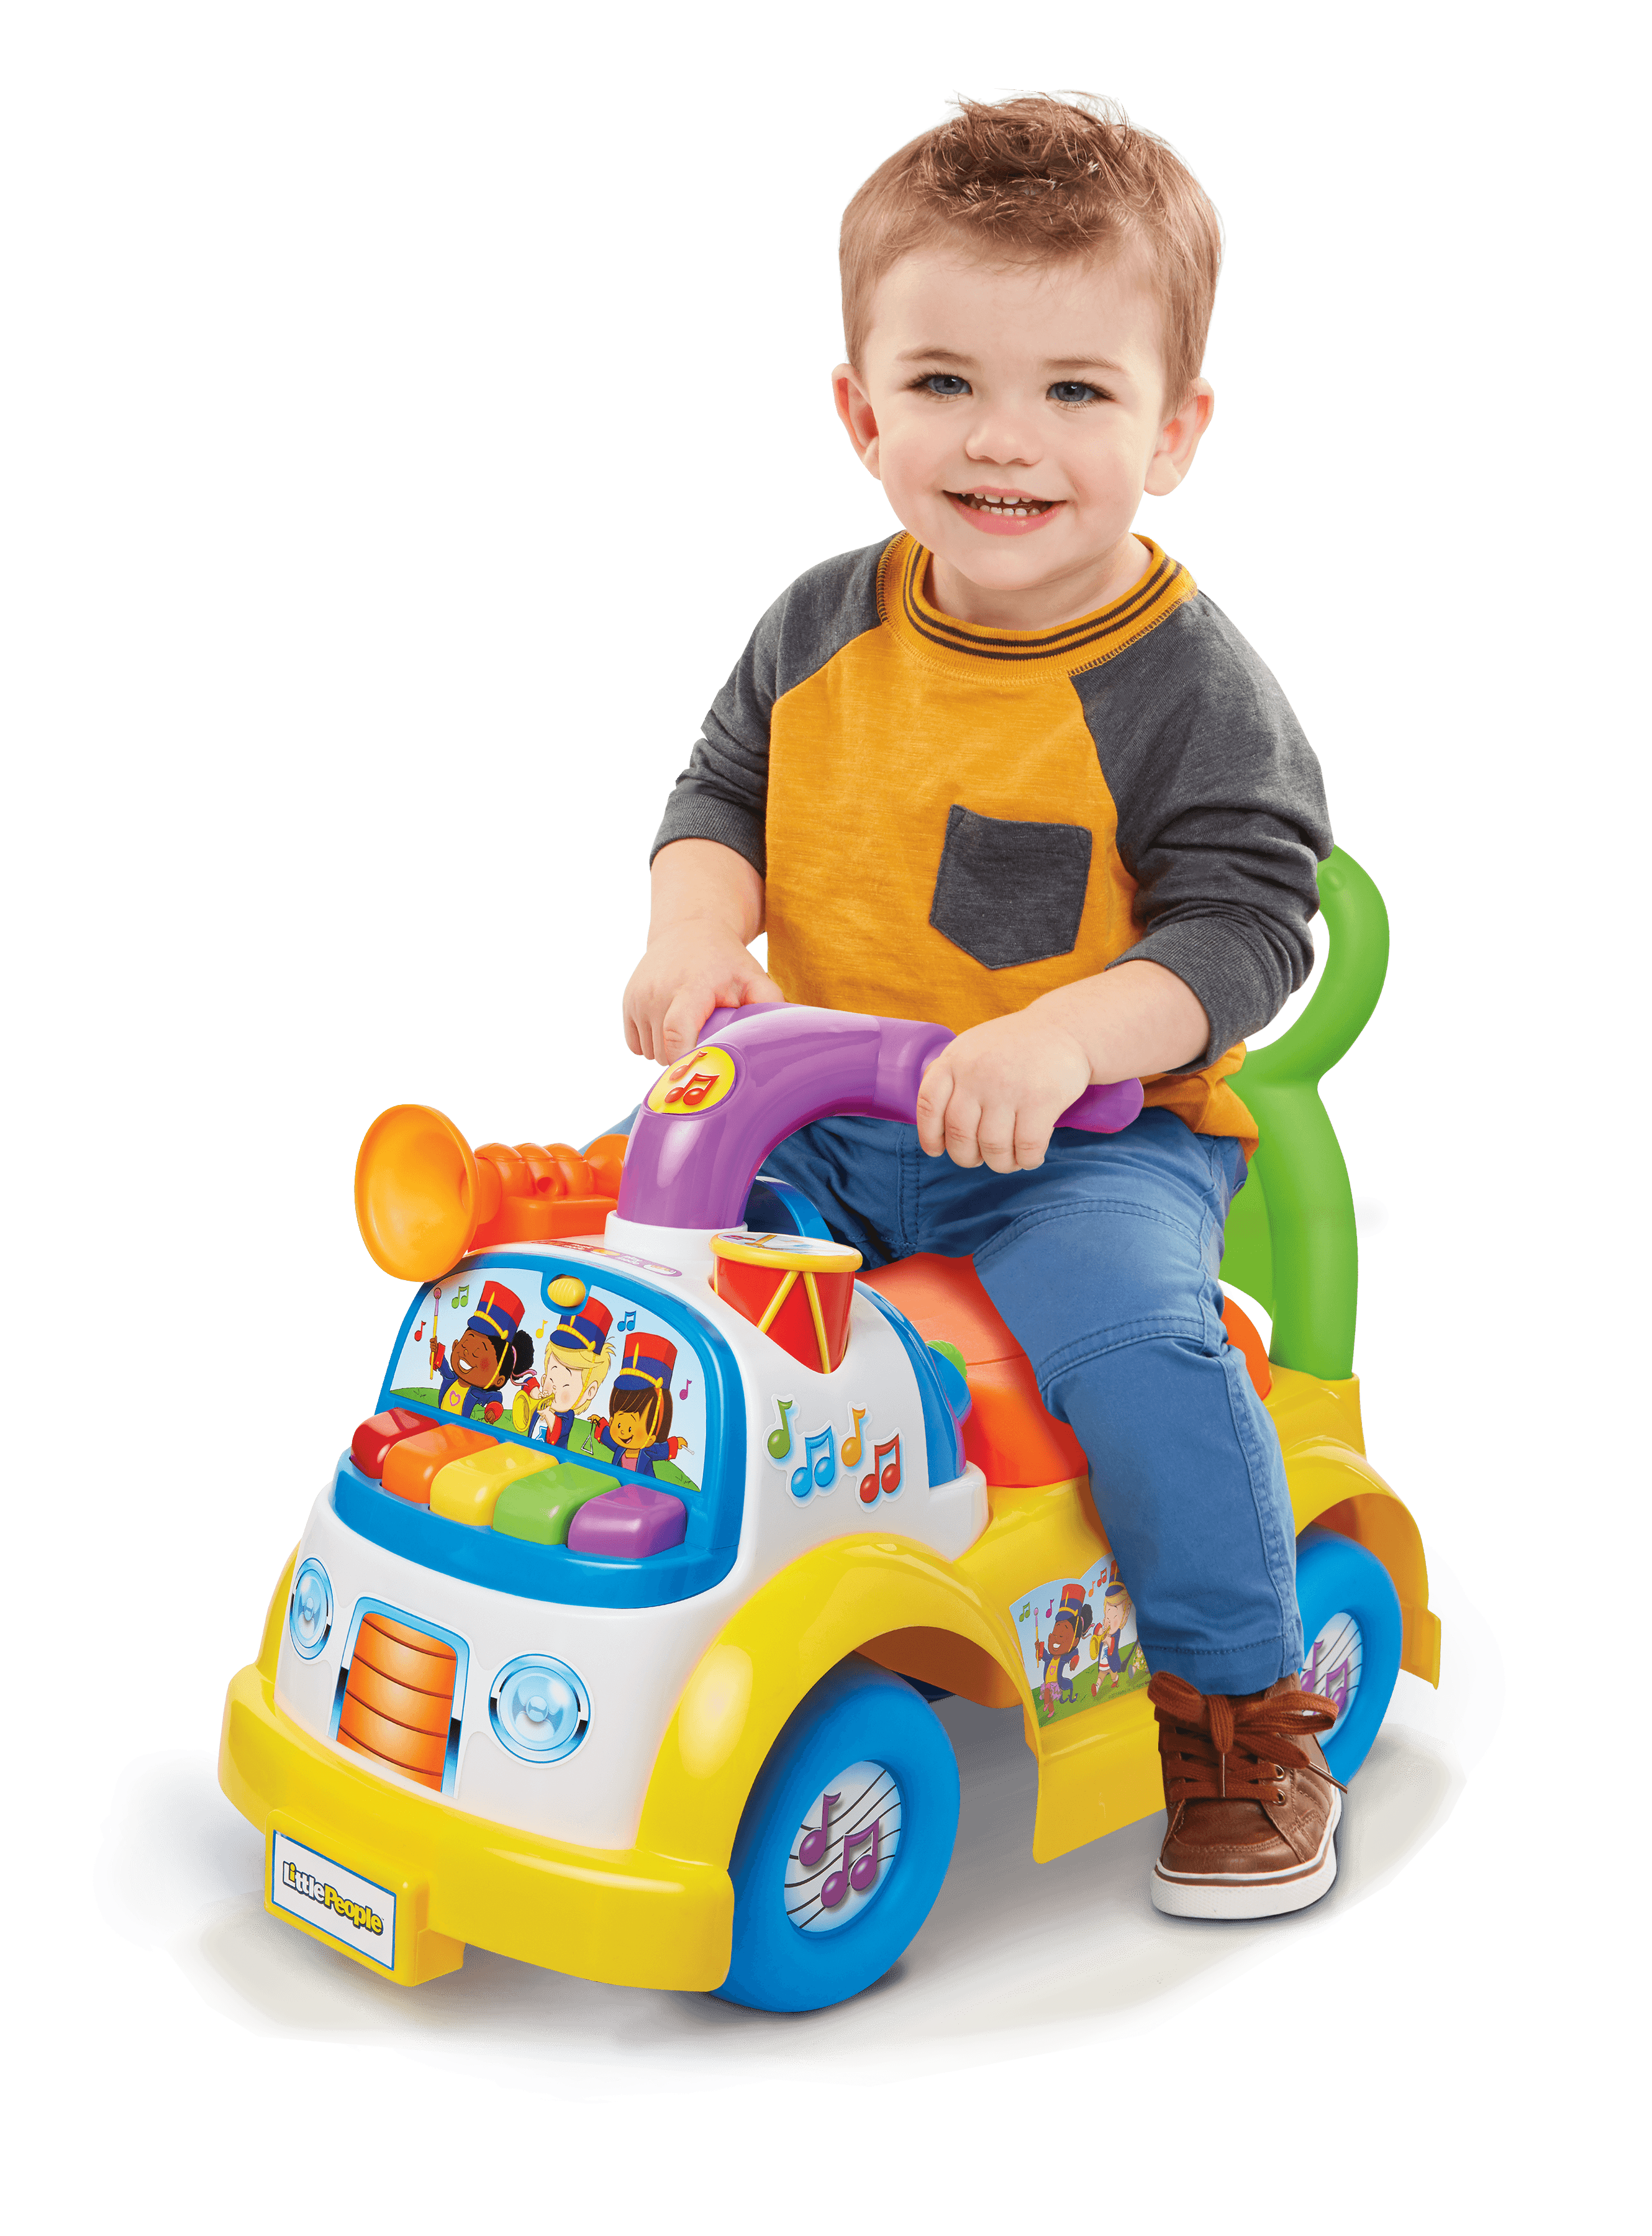 Fisher Price Little People Music Parade Ride On With Sounds Walmart Com Walmart Com